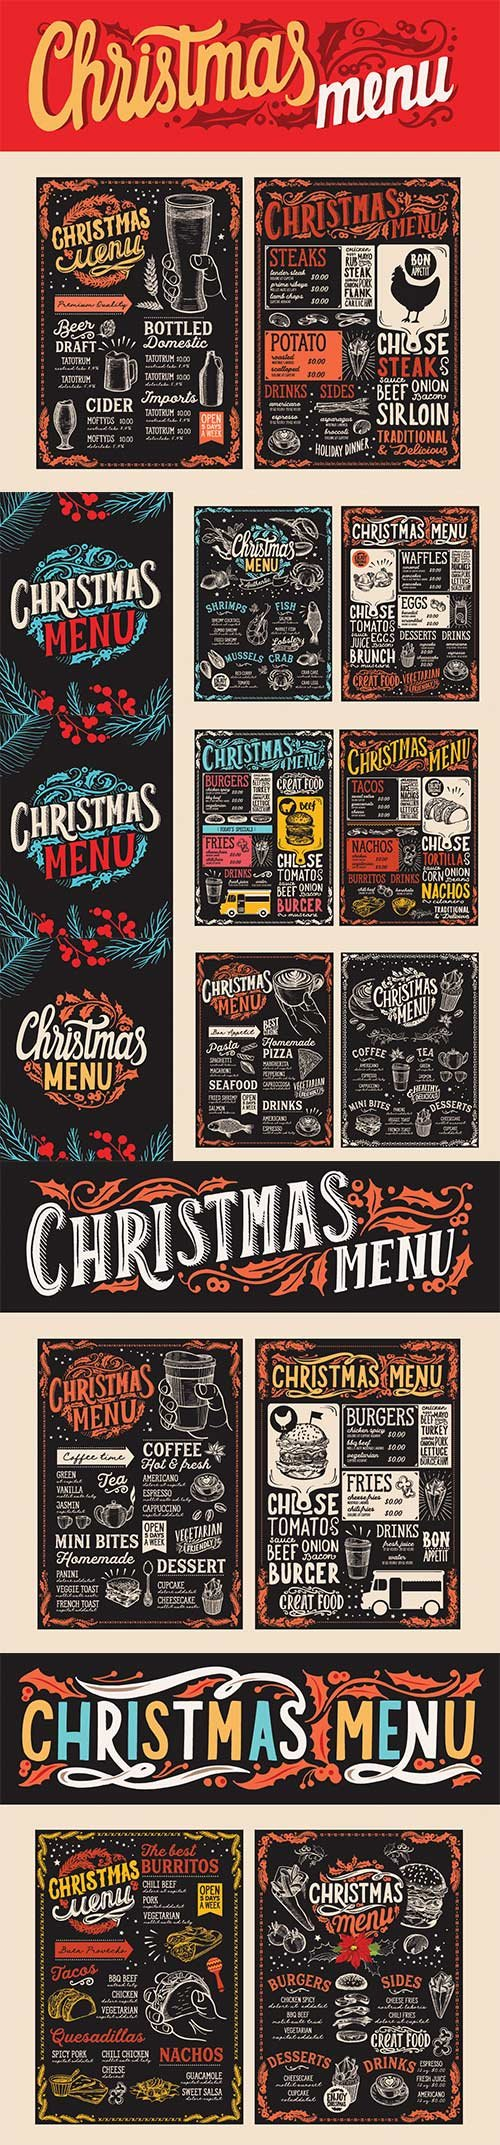 Christmas menu food template for restaurant with doodle